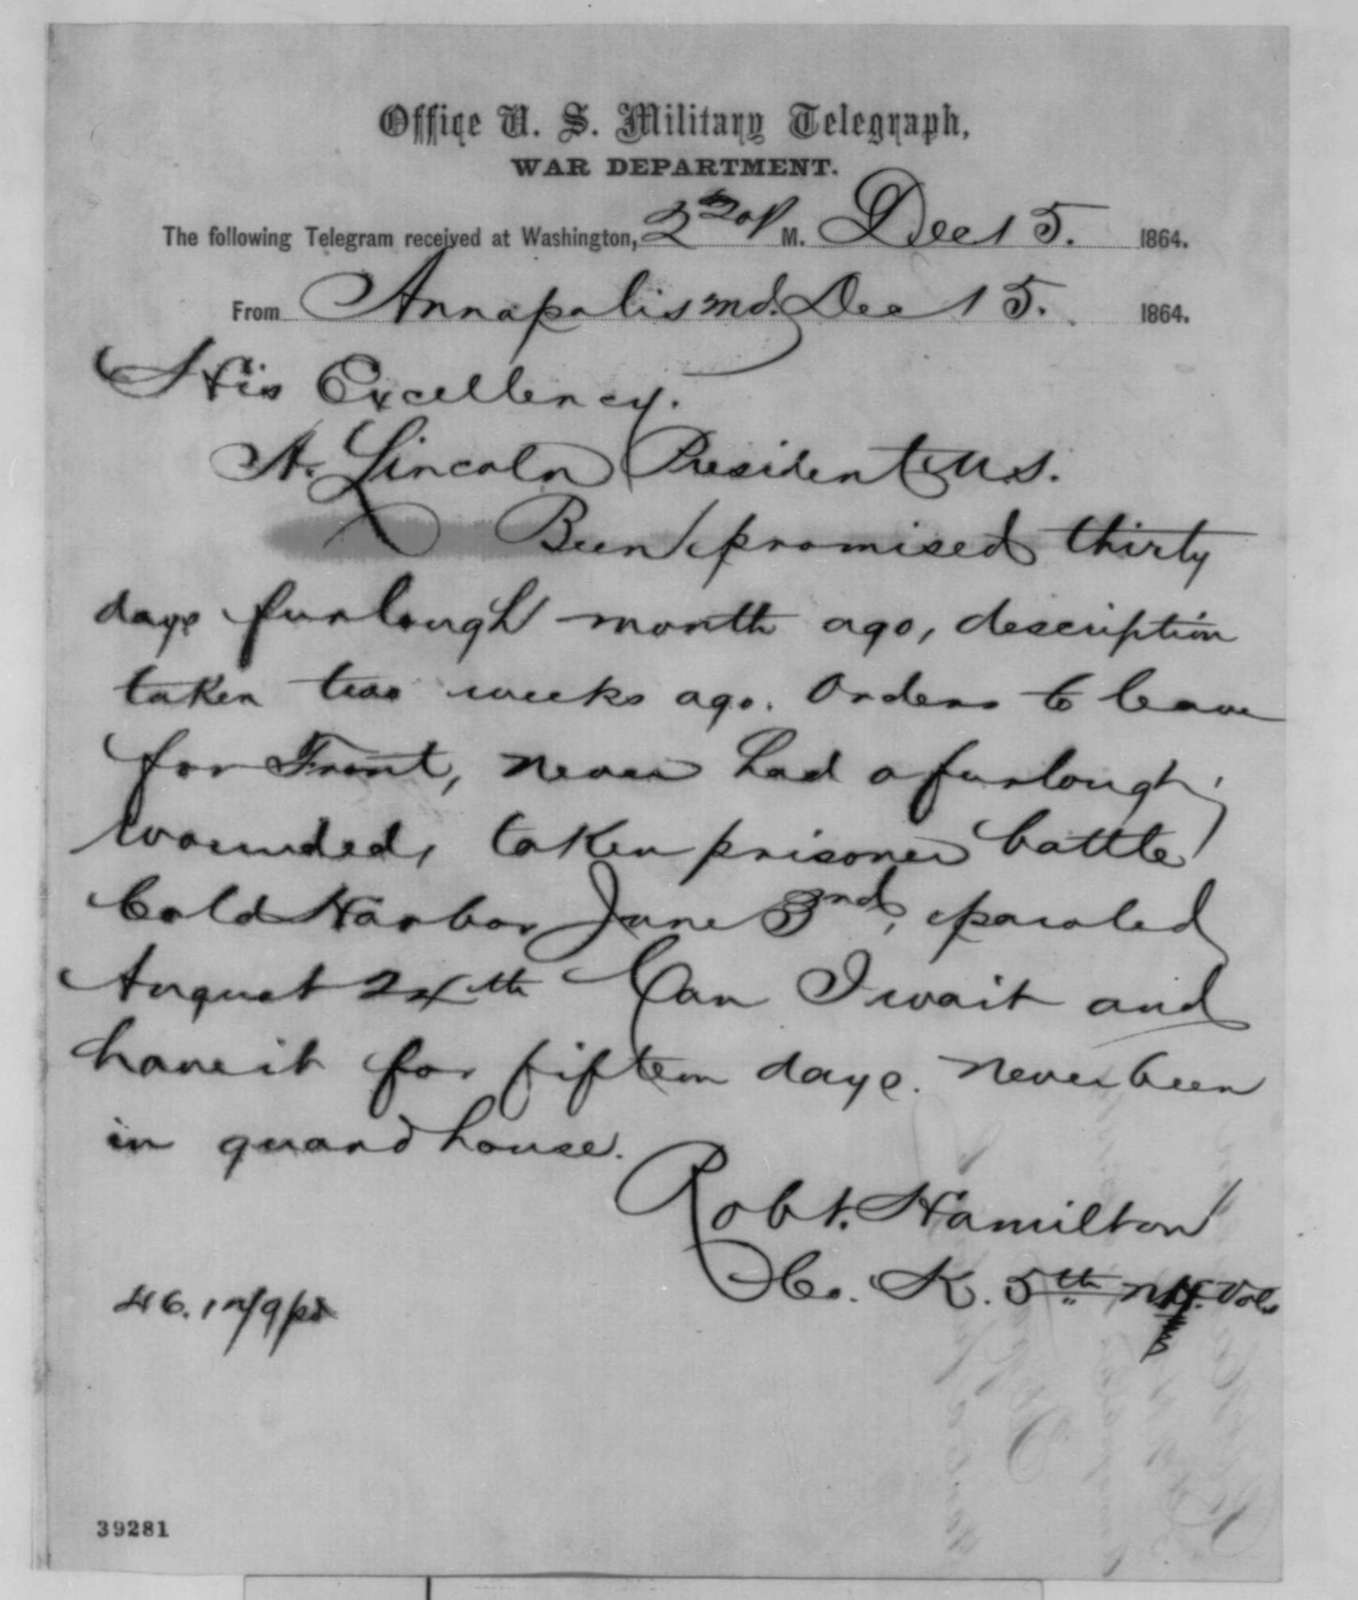 Robert Hamilton to Abraham Lincoln, Thursday, December 15, 1864  (Telegram requesting furlough)